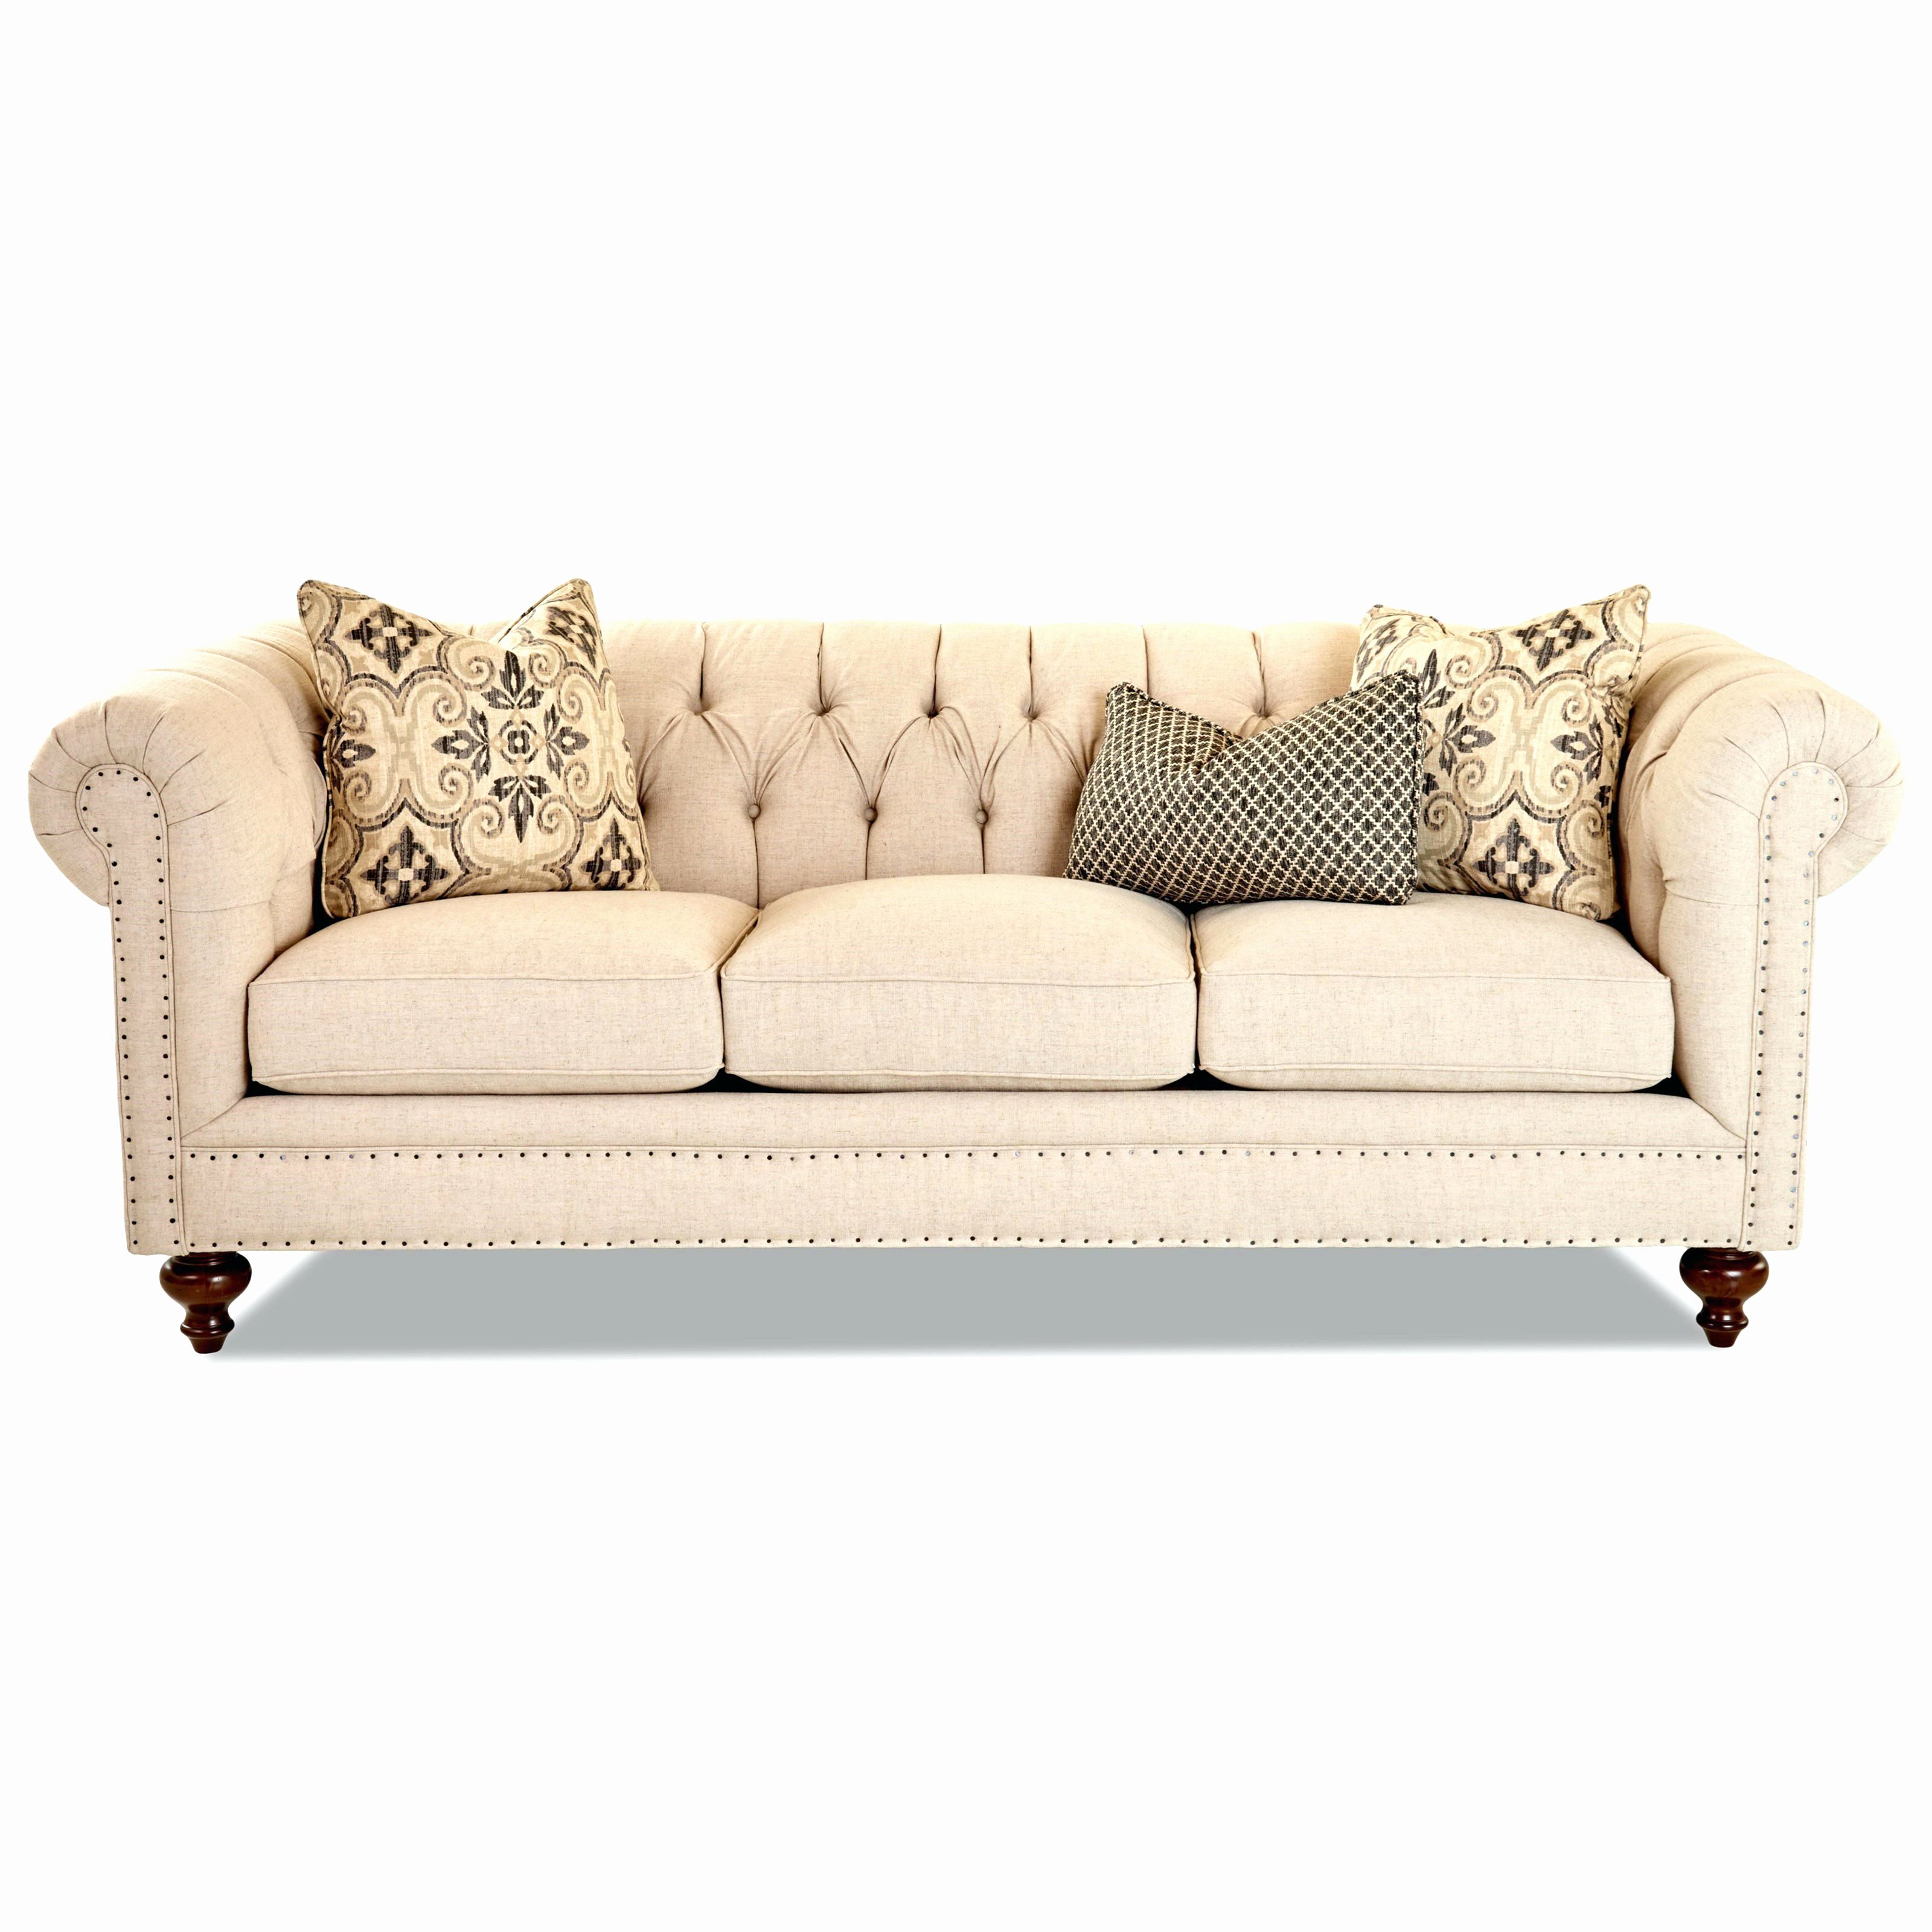 Air Mattress For Lazy Boy Sleeper Sofa Paderborn Pin By Great Sofas On Pinterest Elegant With Picture Inspirational Interior